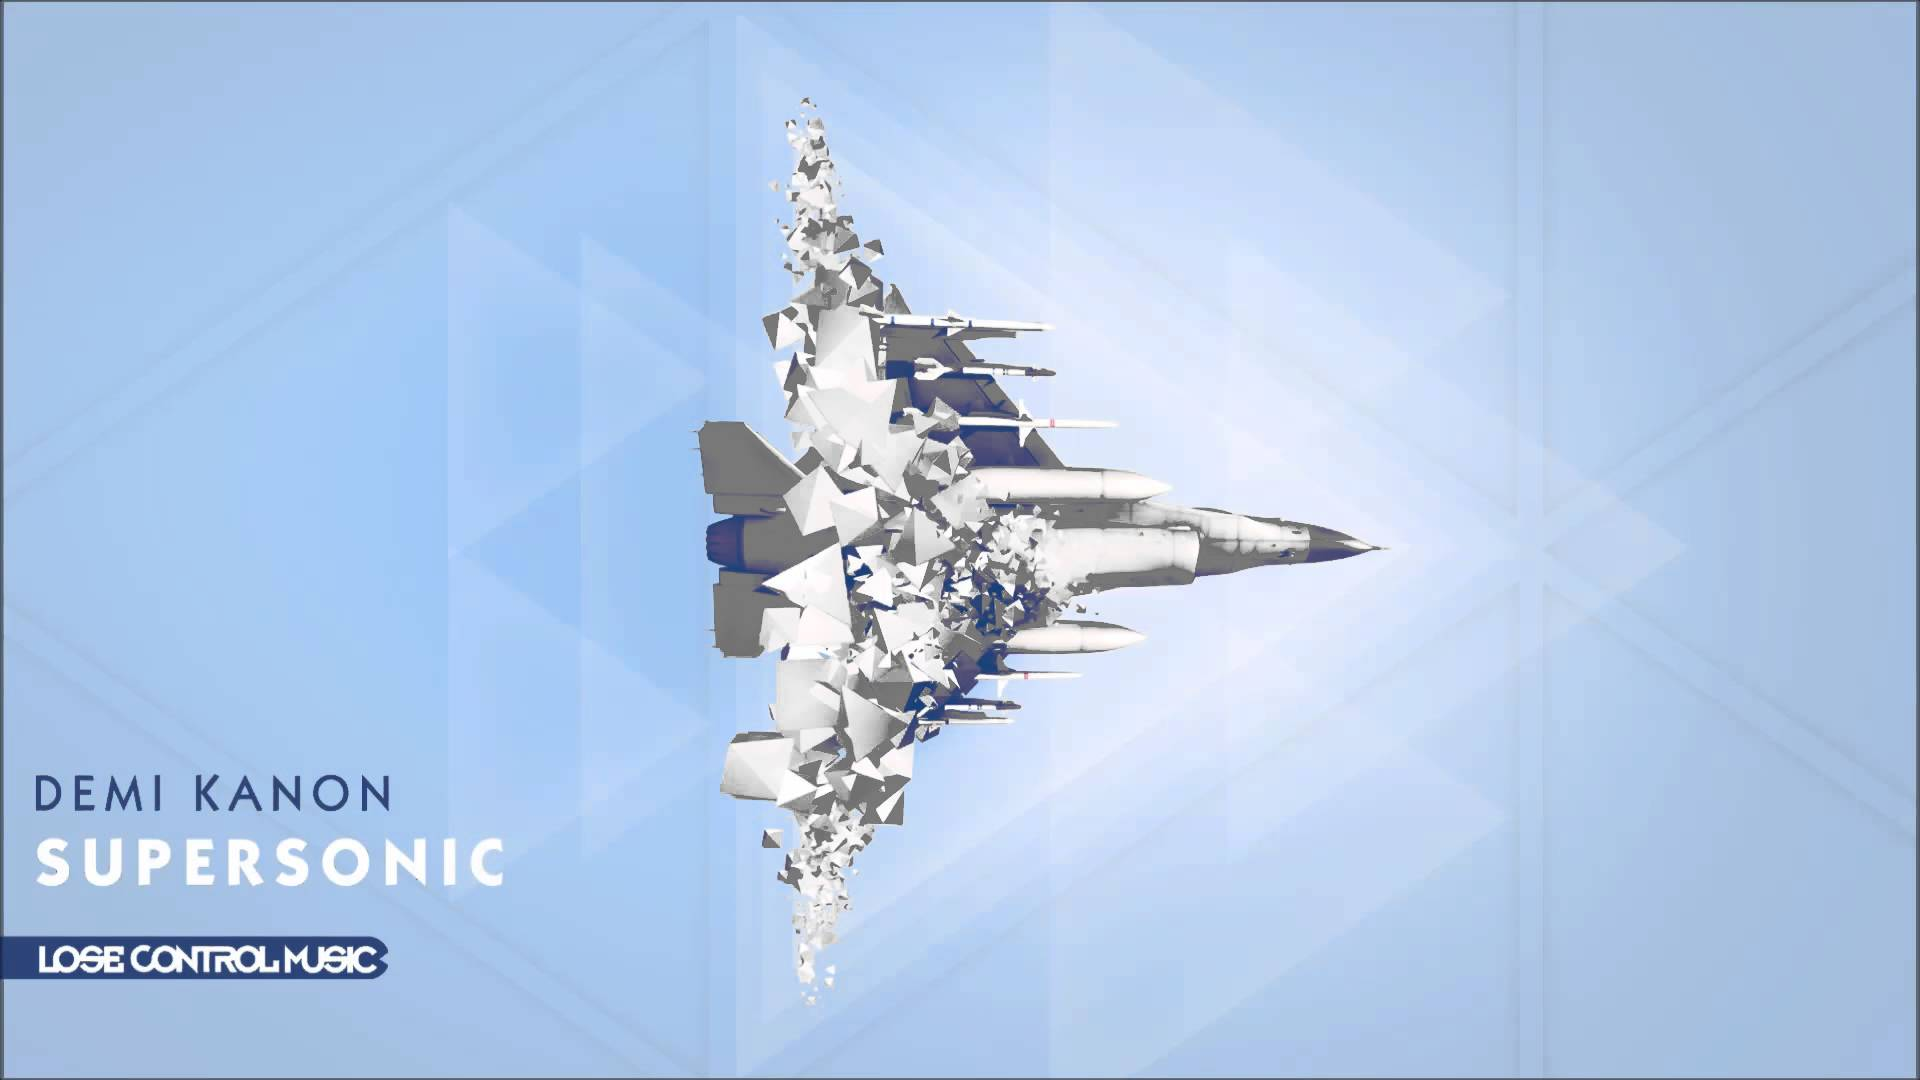 1920x1080 > Supersonic Wallpapers